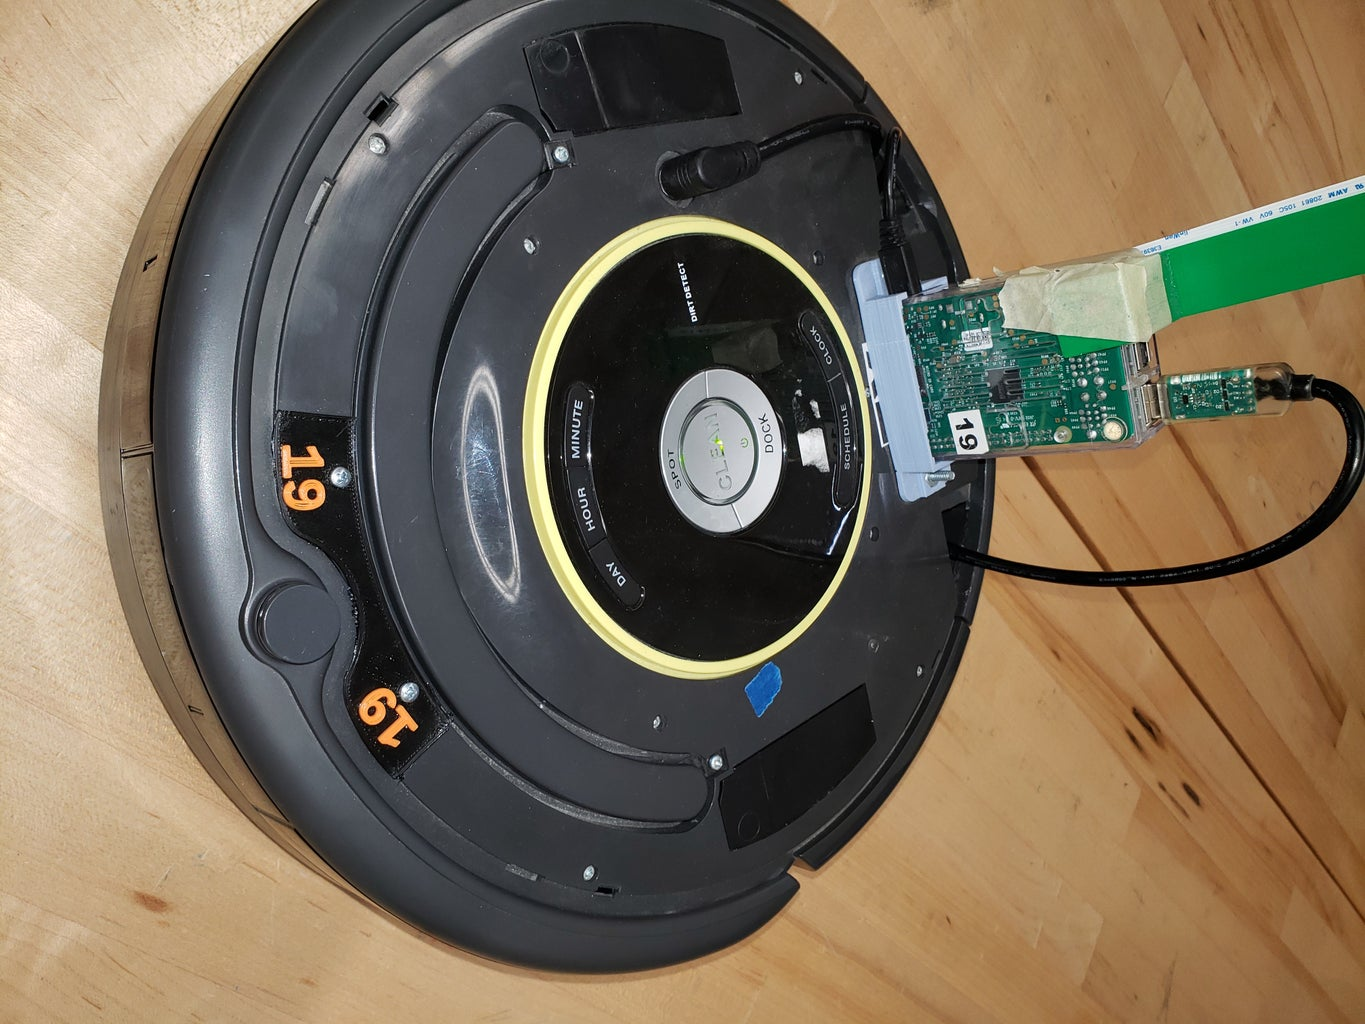 Turning Your Roomba Into a Mars Rover